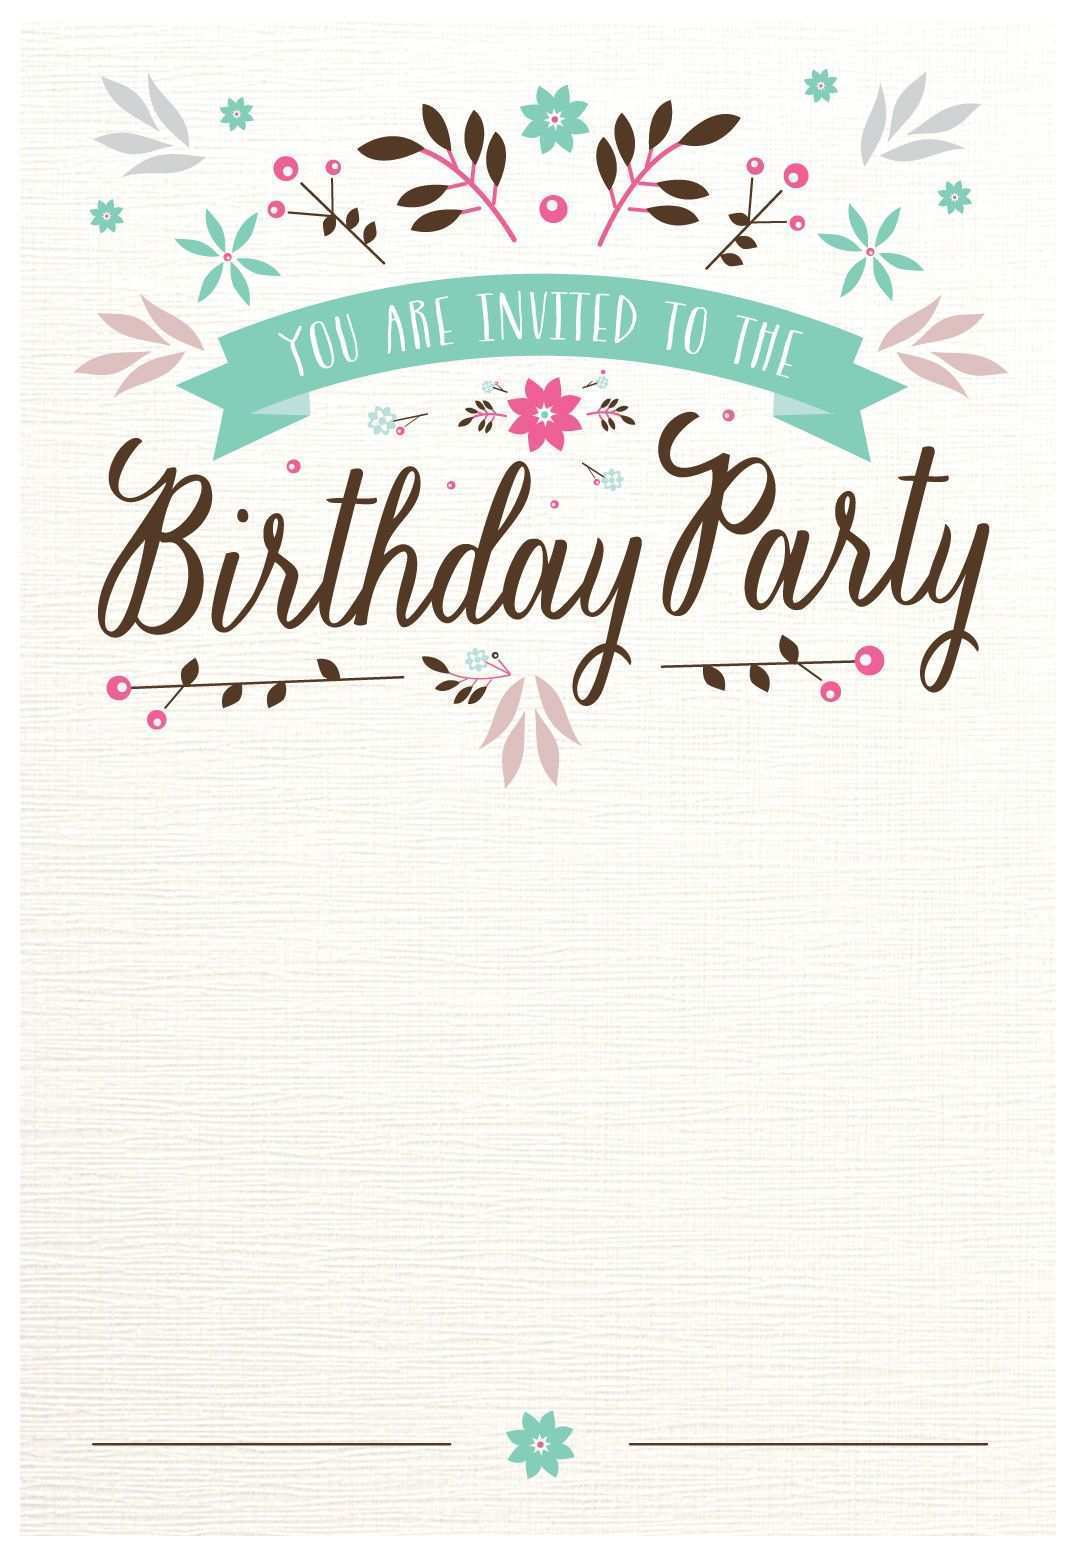 34 Visiting 18th Birthday Card Template Free Photo By 18th Birthday Card Template Free Cards Design Templates